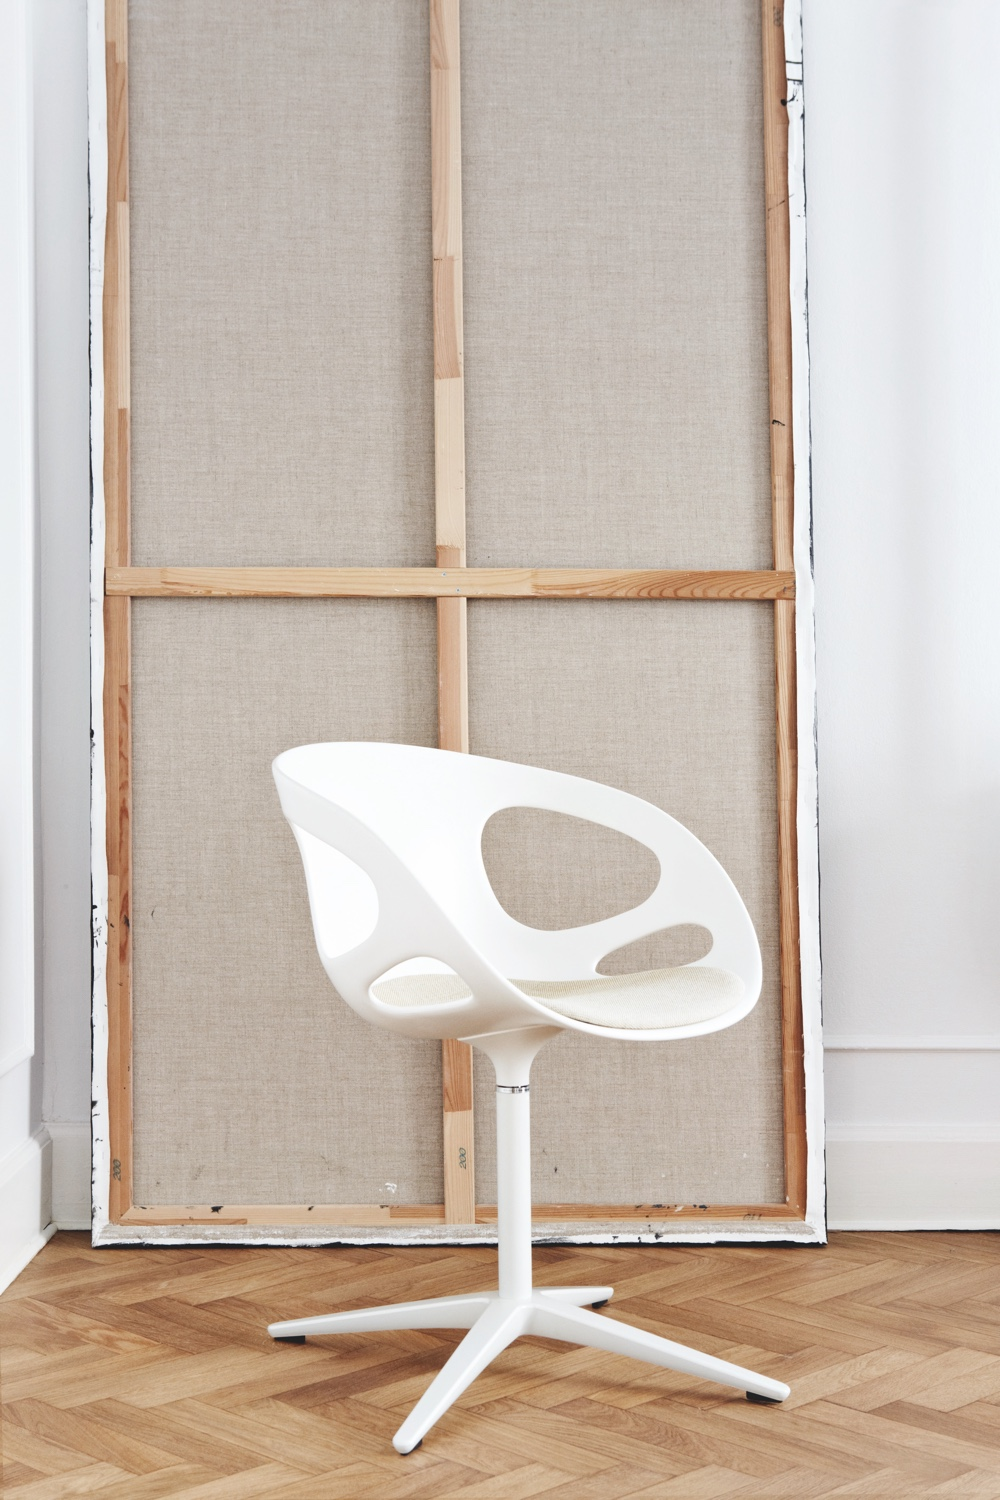 RIN™ swivel chair. Photo by Heidi Lærkenfeldt.